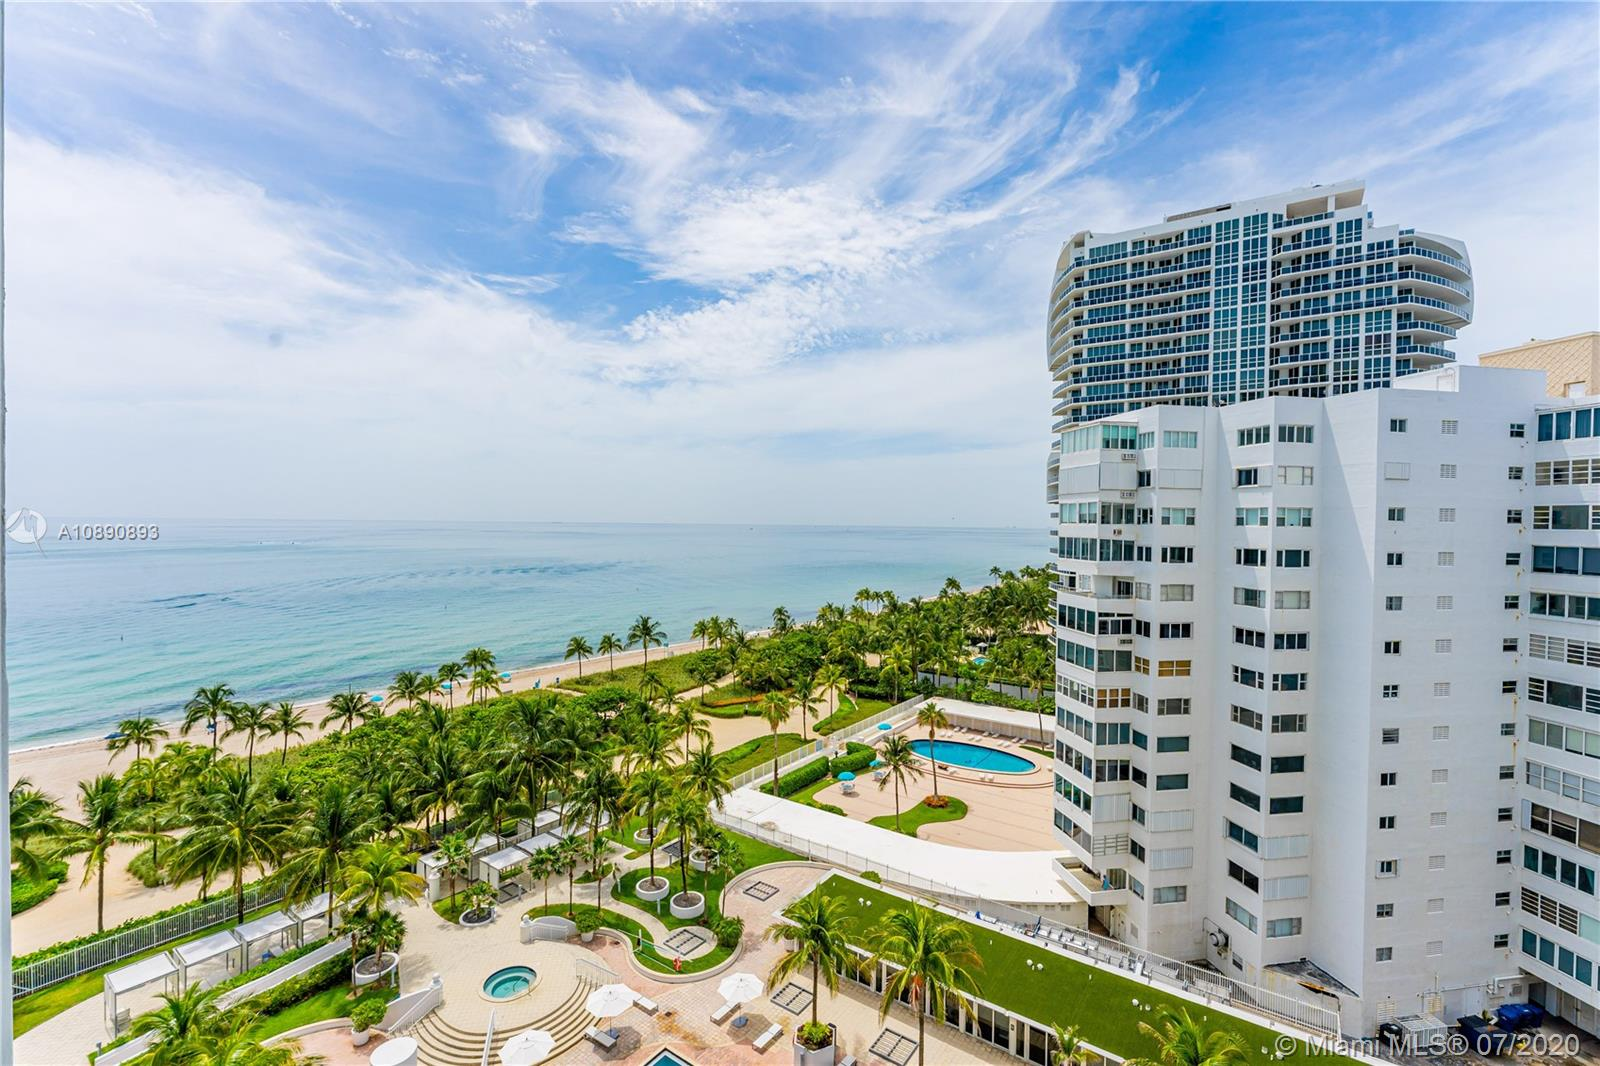 """OCEAN VIEWS FROM YOUR BALCONY !! PERFECT OPPORTUNITY TO OWN A PIECE OF PARADISE WITH THE BEACH AND OCEAN AT YOUR FRONT DOOR ! BEAUTIFUL BOARDWALK ALONG THE BEACH TO CATCH THE EARLY MORNING SUNRISE AND WALKING DISTANCE TO THE RENOWNED """" BAL HARBOUR SHOPS """" ACCUSTOM FOR ITS HIGH END RETAIL AND CELEBRITY SIGHTINGS ! HARBOUR HOUSE IS A LUXURY CONDO BUILDING NEXT TO THE RITZ CARLTON WHICH COMES WITH ITS VERY OWN """" PRIVATE BEACH CLUB AND NEWLY DESIGNED FULL SERVICE SPA AND GYM""""  , 24 HOUR CONCIERGE/VALET SERVICES , GROCERY STORE , CAFE SERVICES AND MOVIE THEATER ! THIS CAN BE YOUR PRIMARY OR VACATION HOME IF YOU LIKE . BUILDING IS PET FRIENDLY AND ALLOWS YOU TO RENT A MINIMUM OF 6 MONTHS AT A TIME ! SCHEDULE A VIEWING TODAY AND MAKE BAL HARBOUR YOUR NEXT DESTINATION !"""